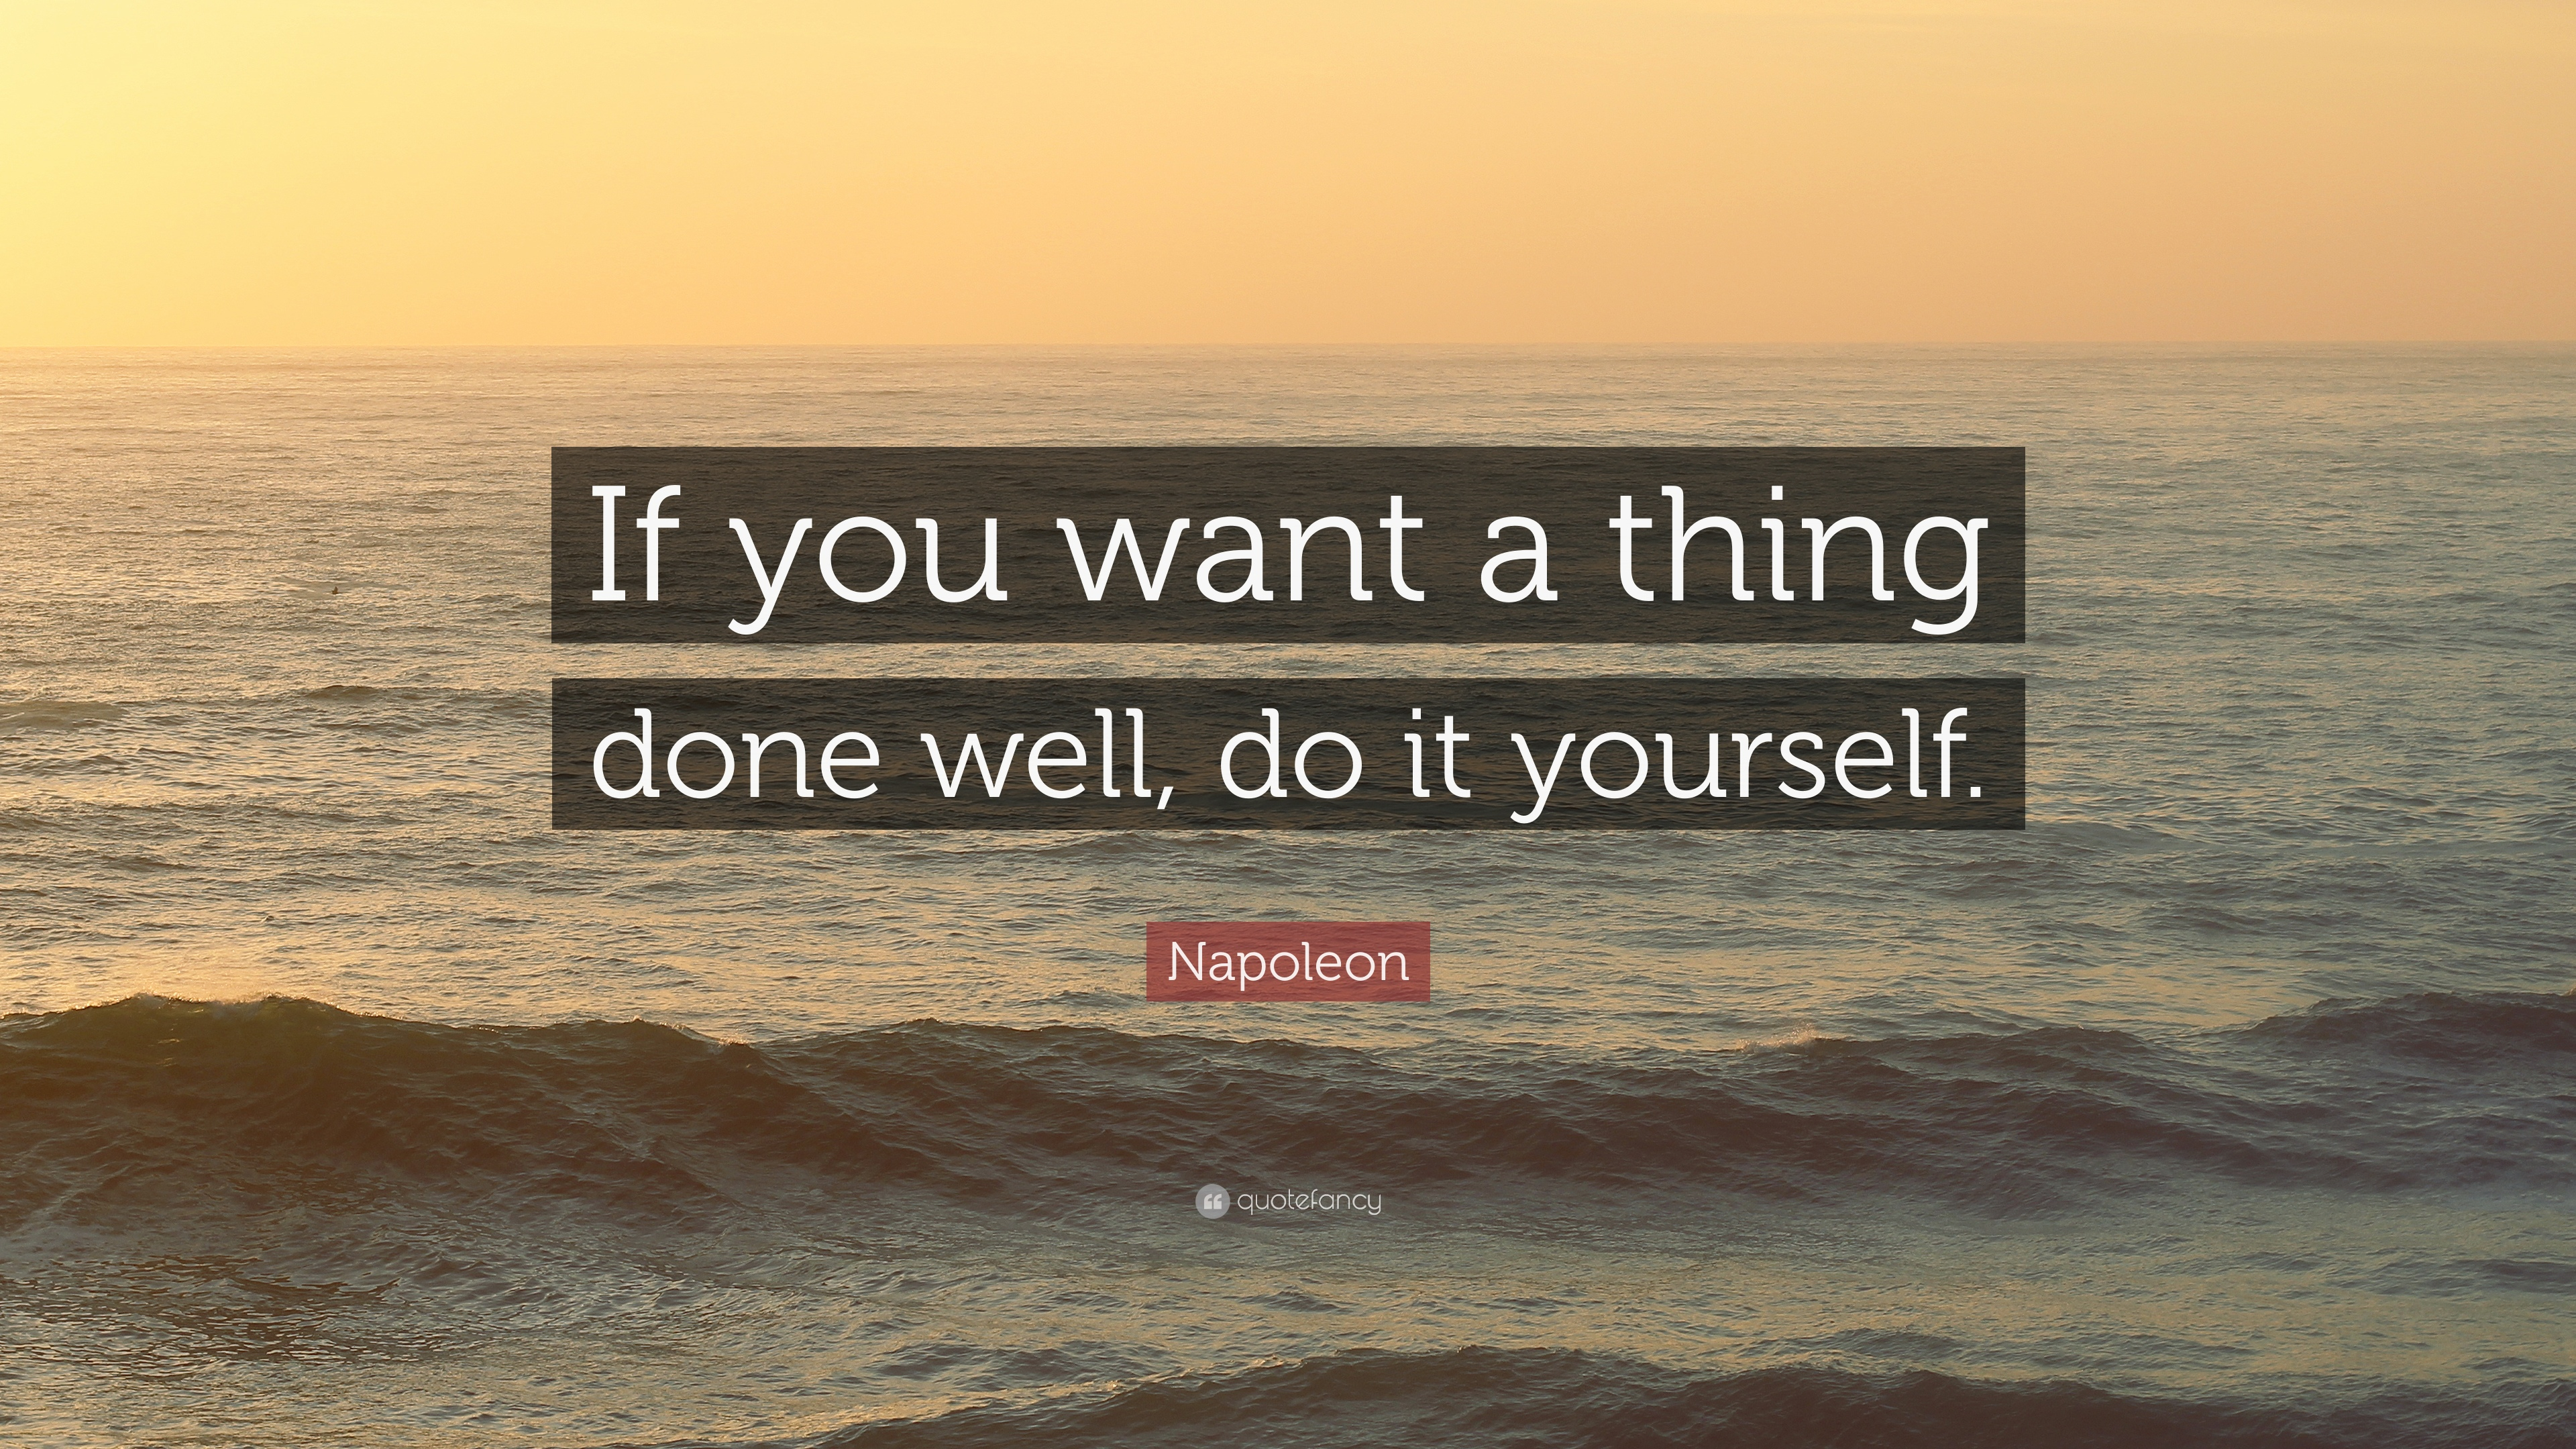 Napoleon quote if you want a thing done well do it yourself 15 napoleon quote if you want a thing done well do it yourself solutioingenieria Image collections